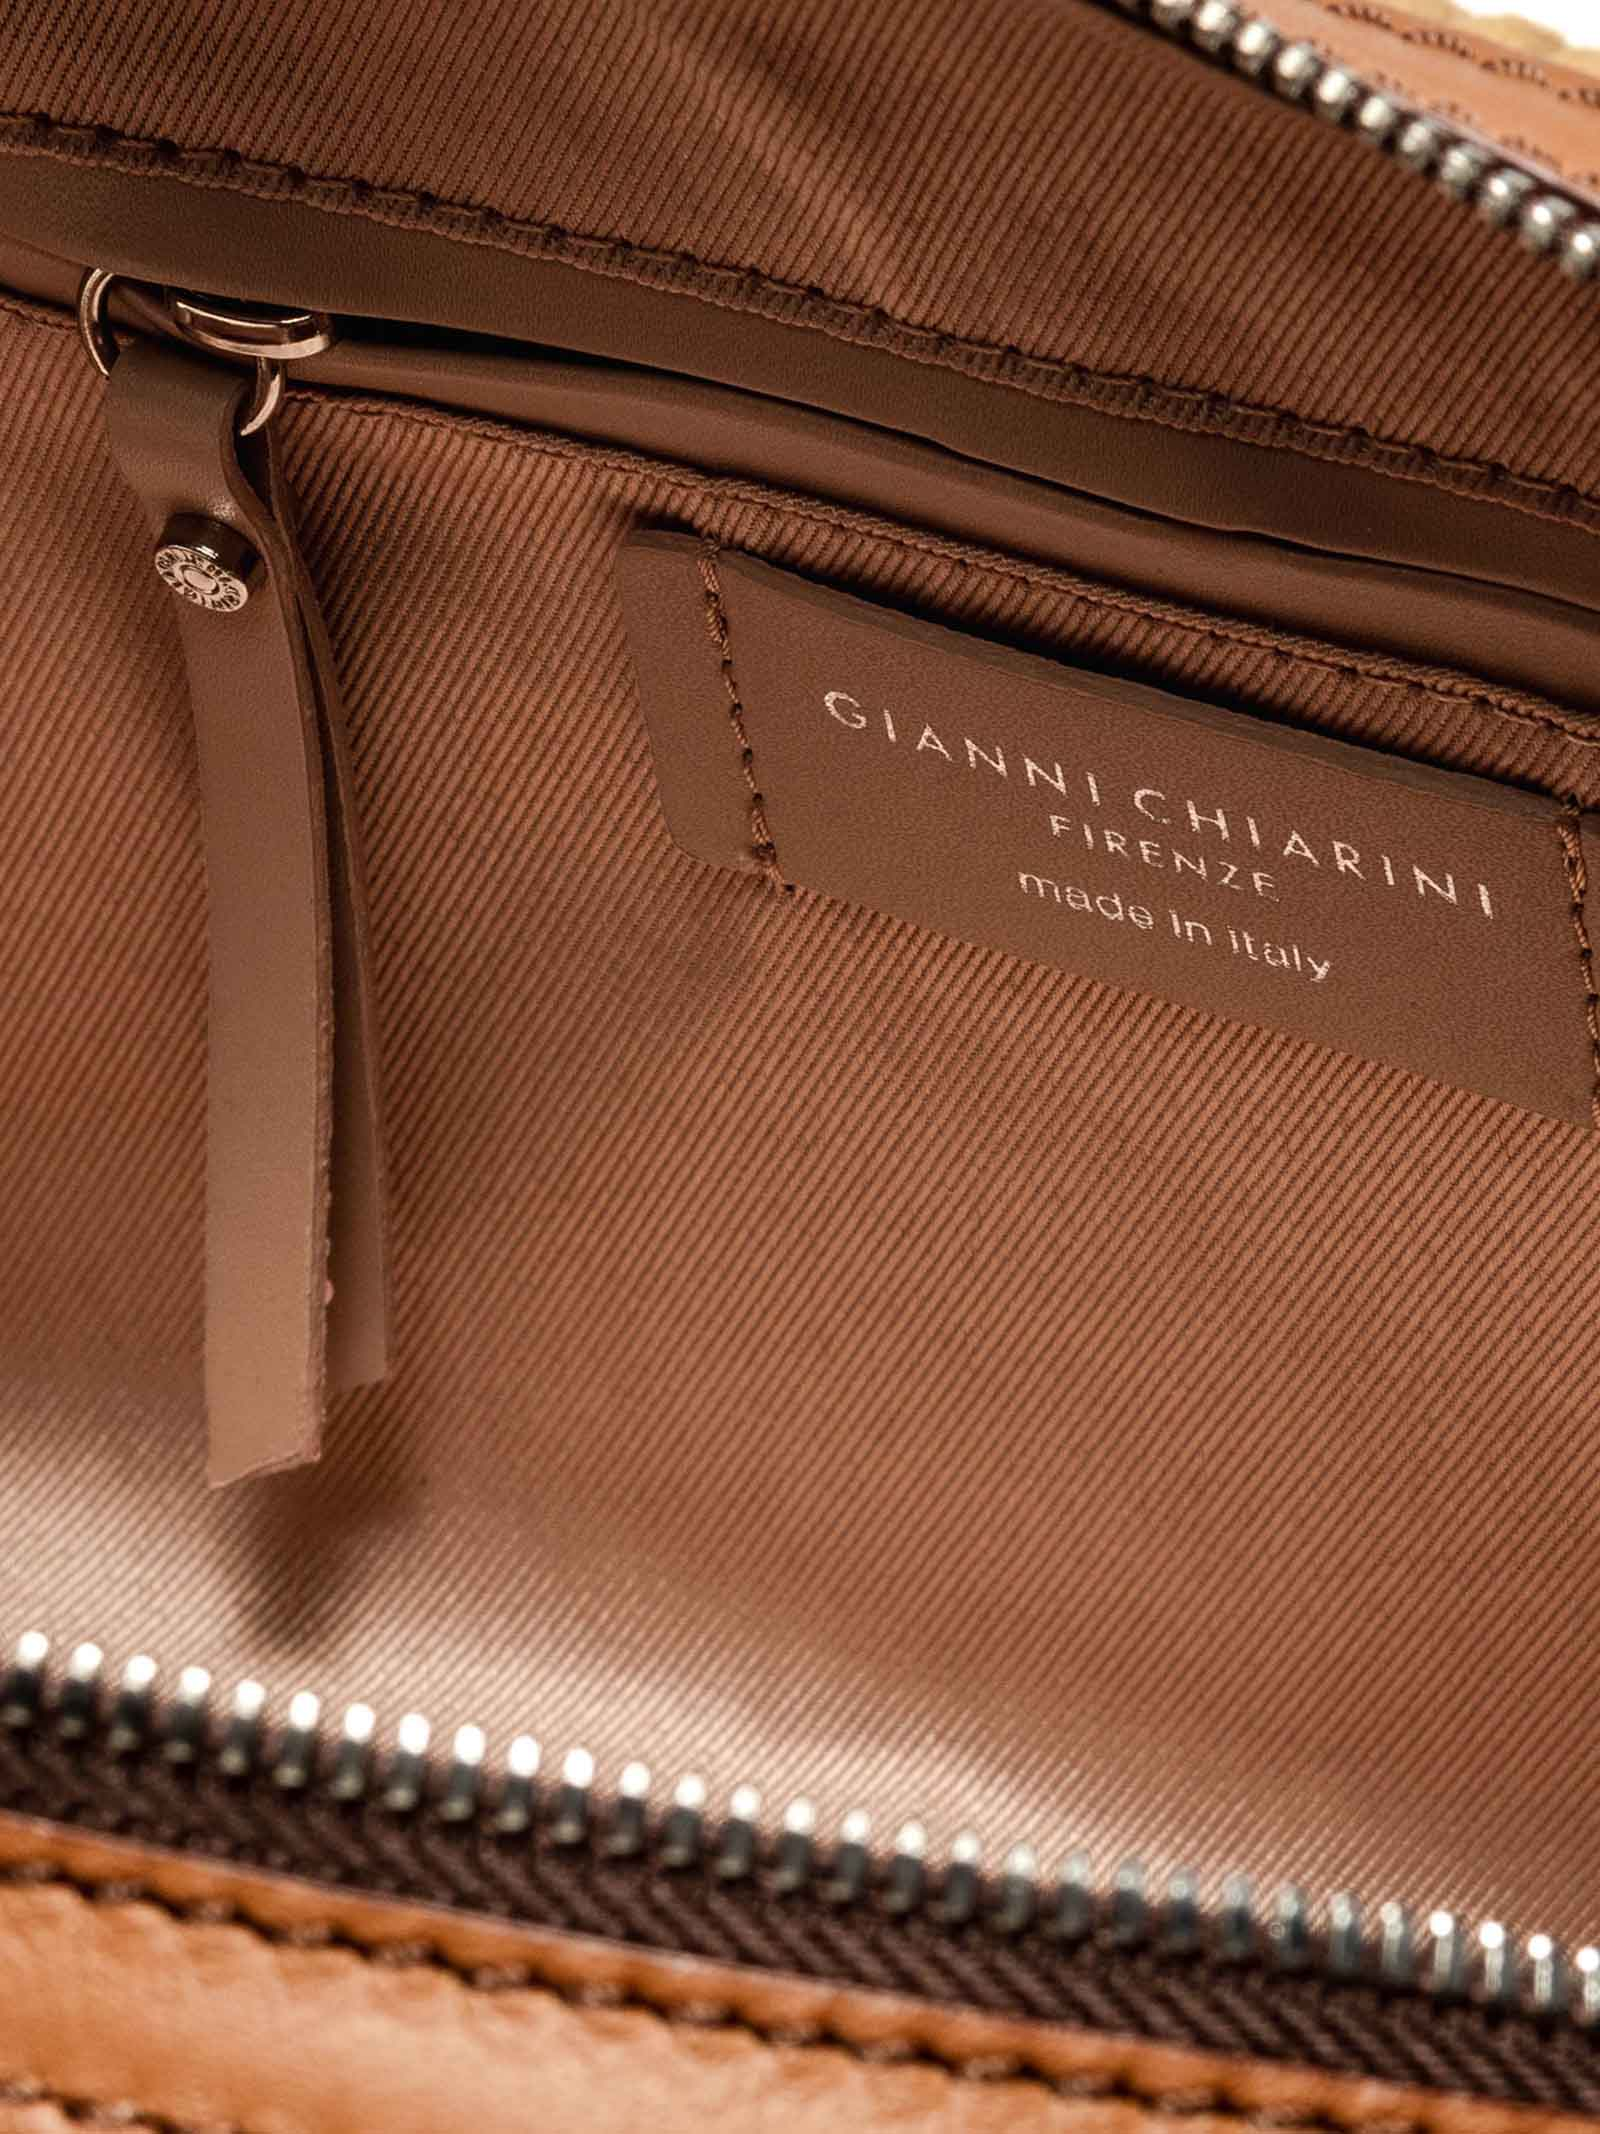 Women's Shoulder Bag Alifa in Tan Velvet and Leather with Double Handles and Adjustable And Detachable Shoulder Strap in Color Matched Gianni Chiarini | Bags and backpacks | BS864811130